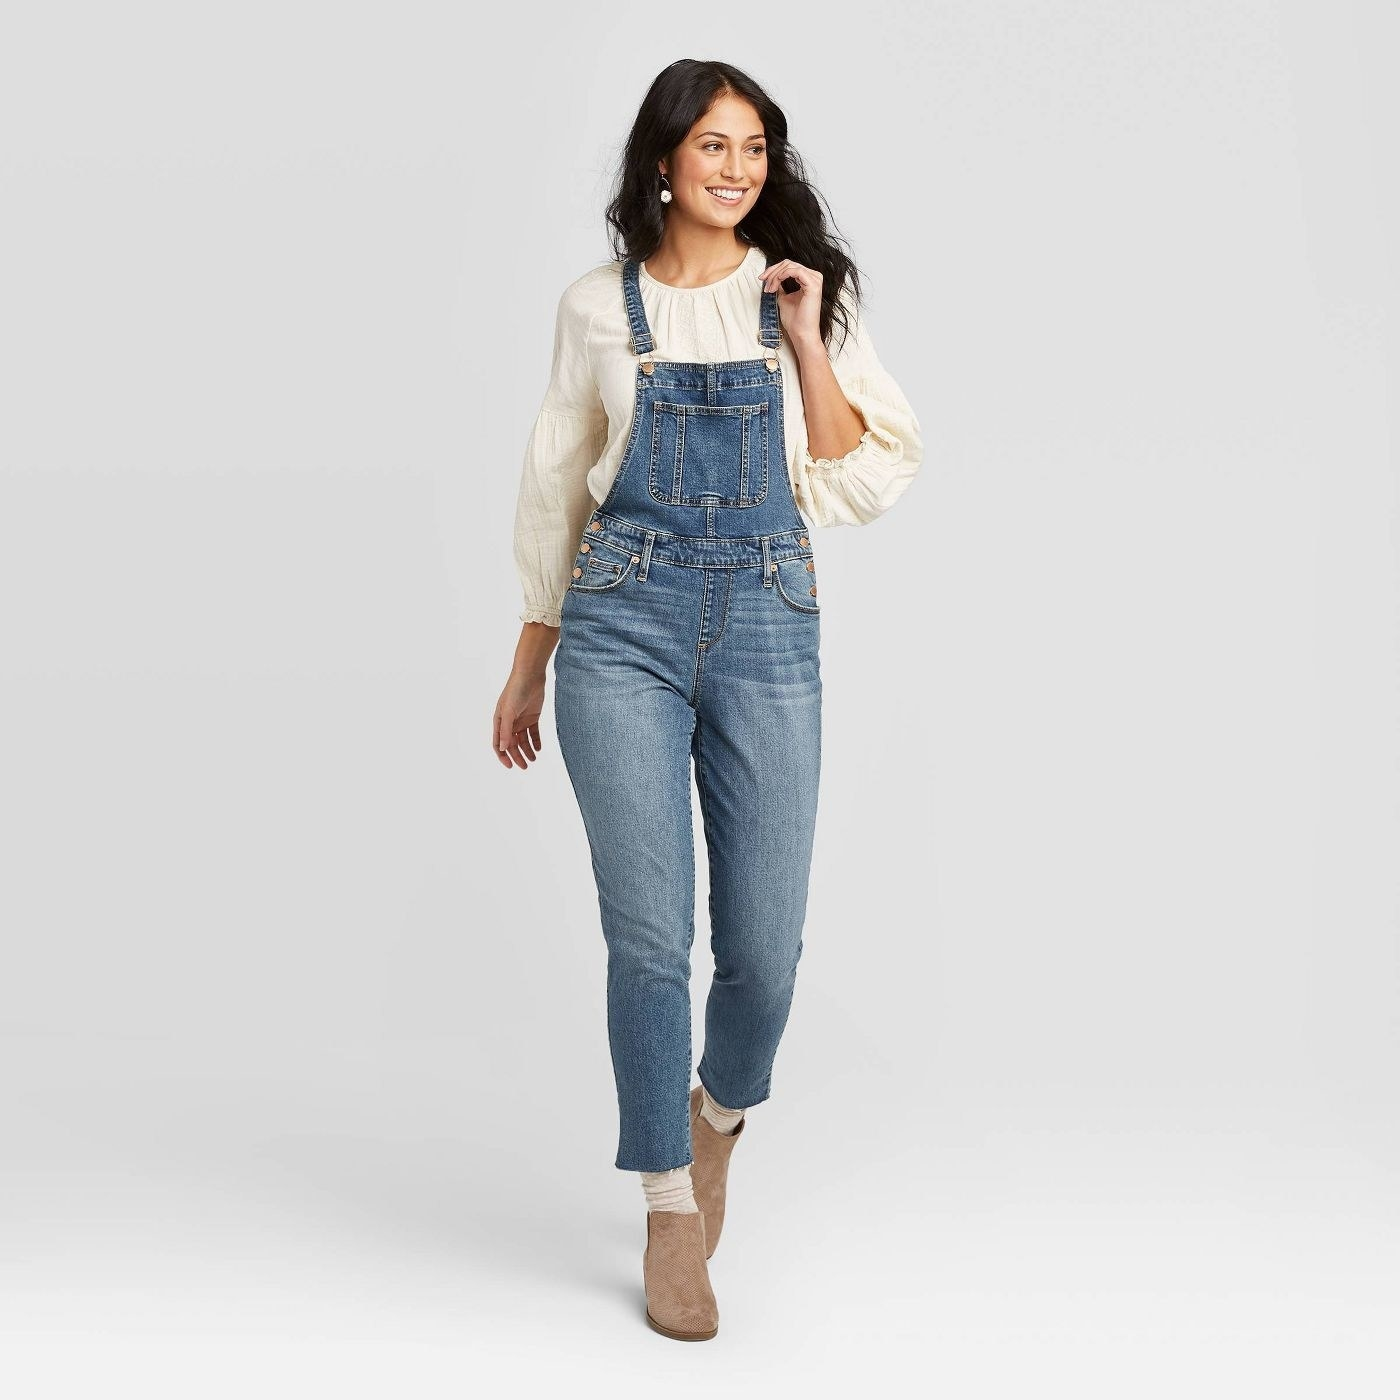 a model in a white blouse and denim overalls